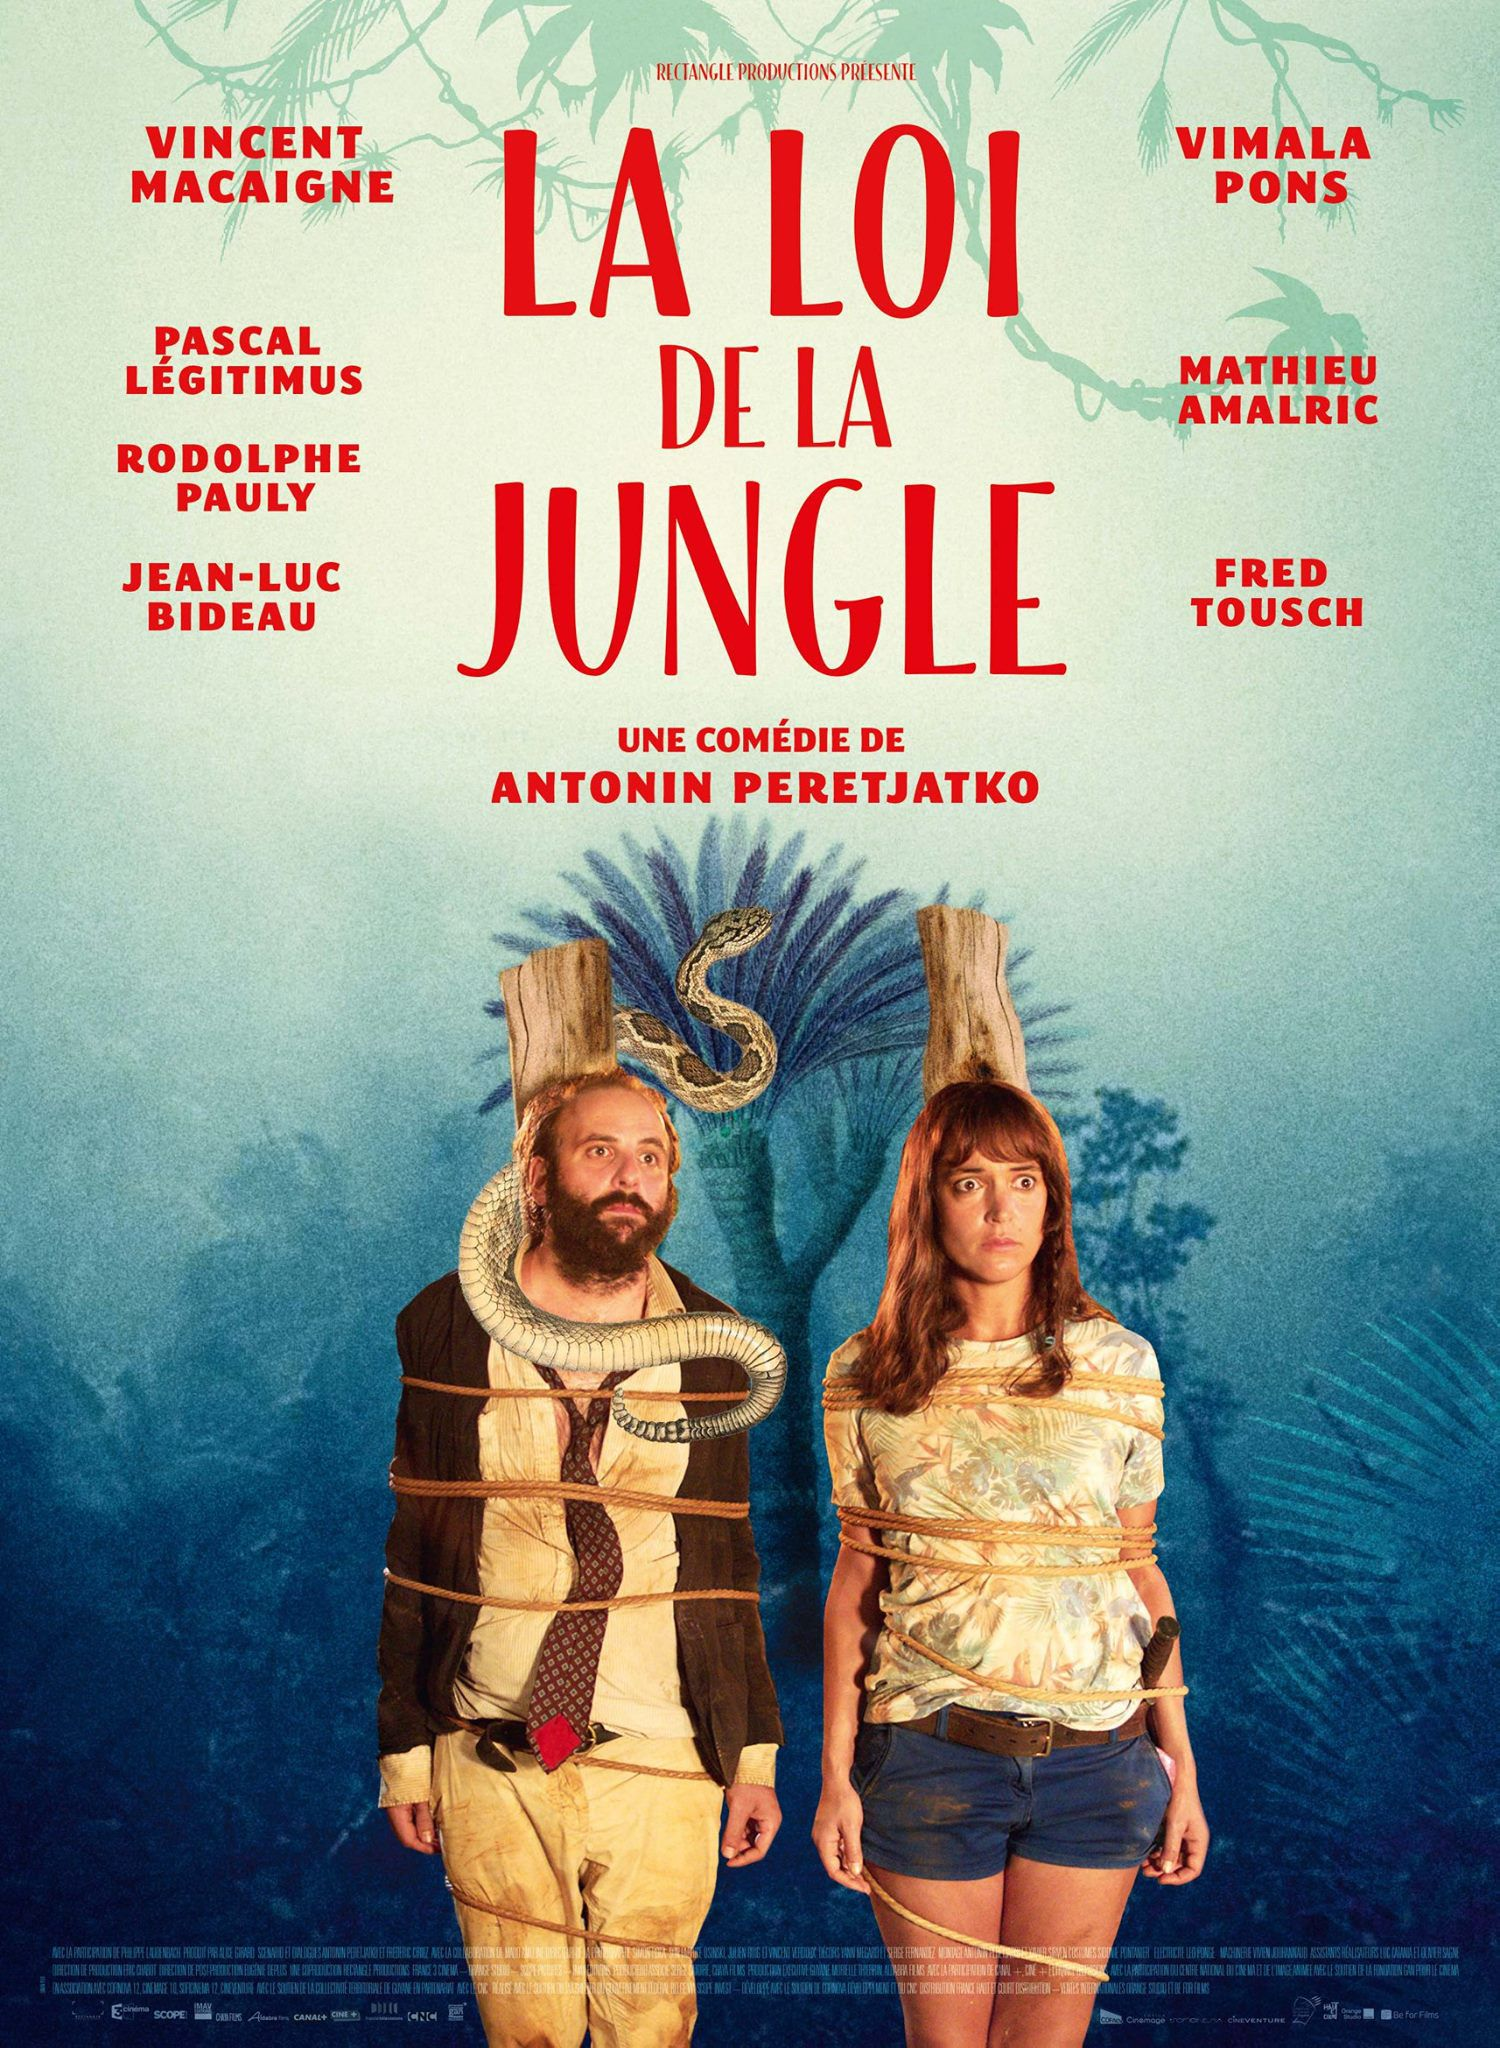 La Loi de la jungle - Film (2016)